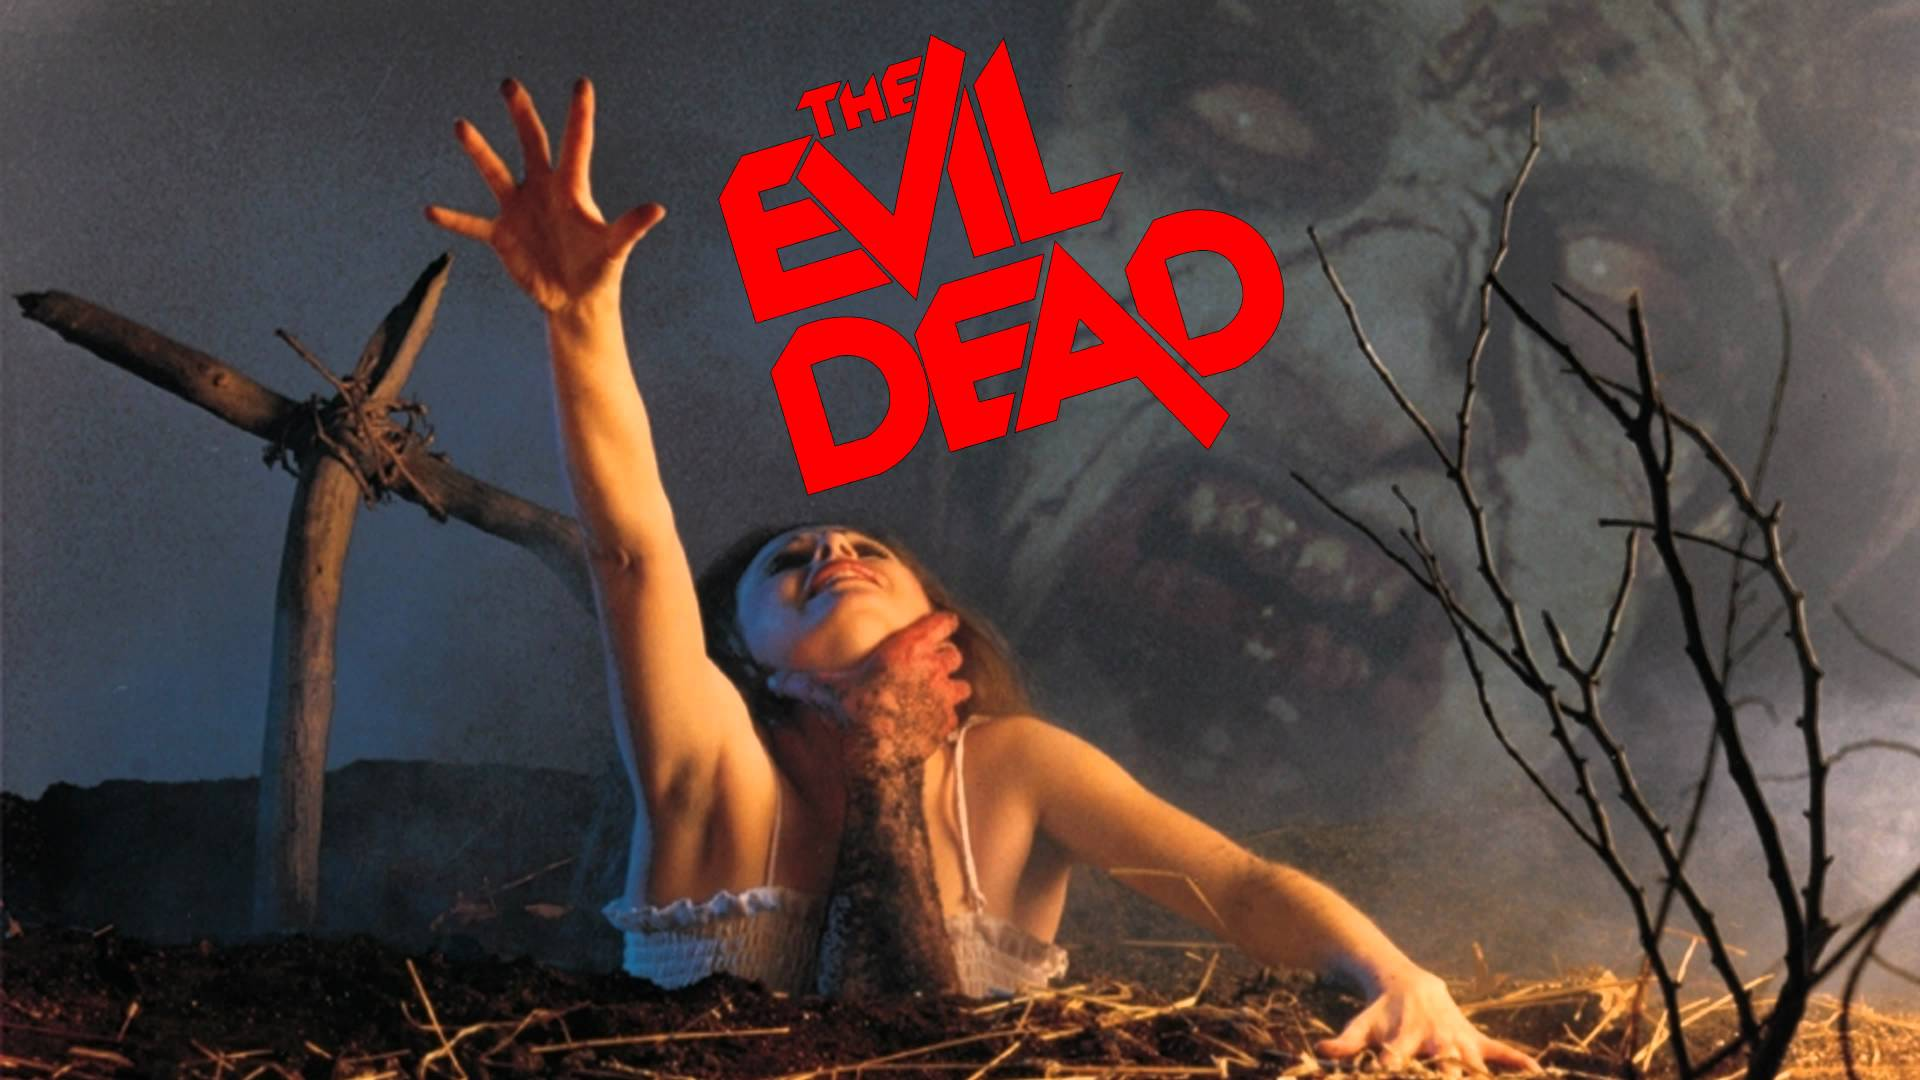 the evil dead wallpaper #2